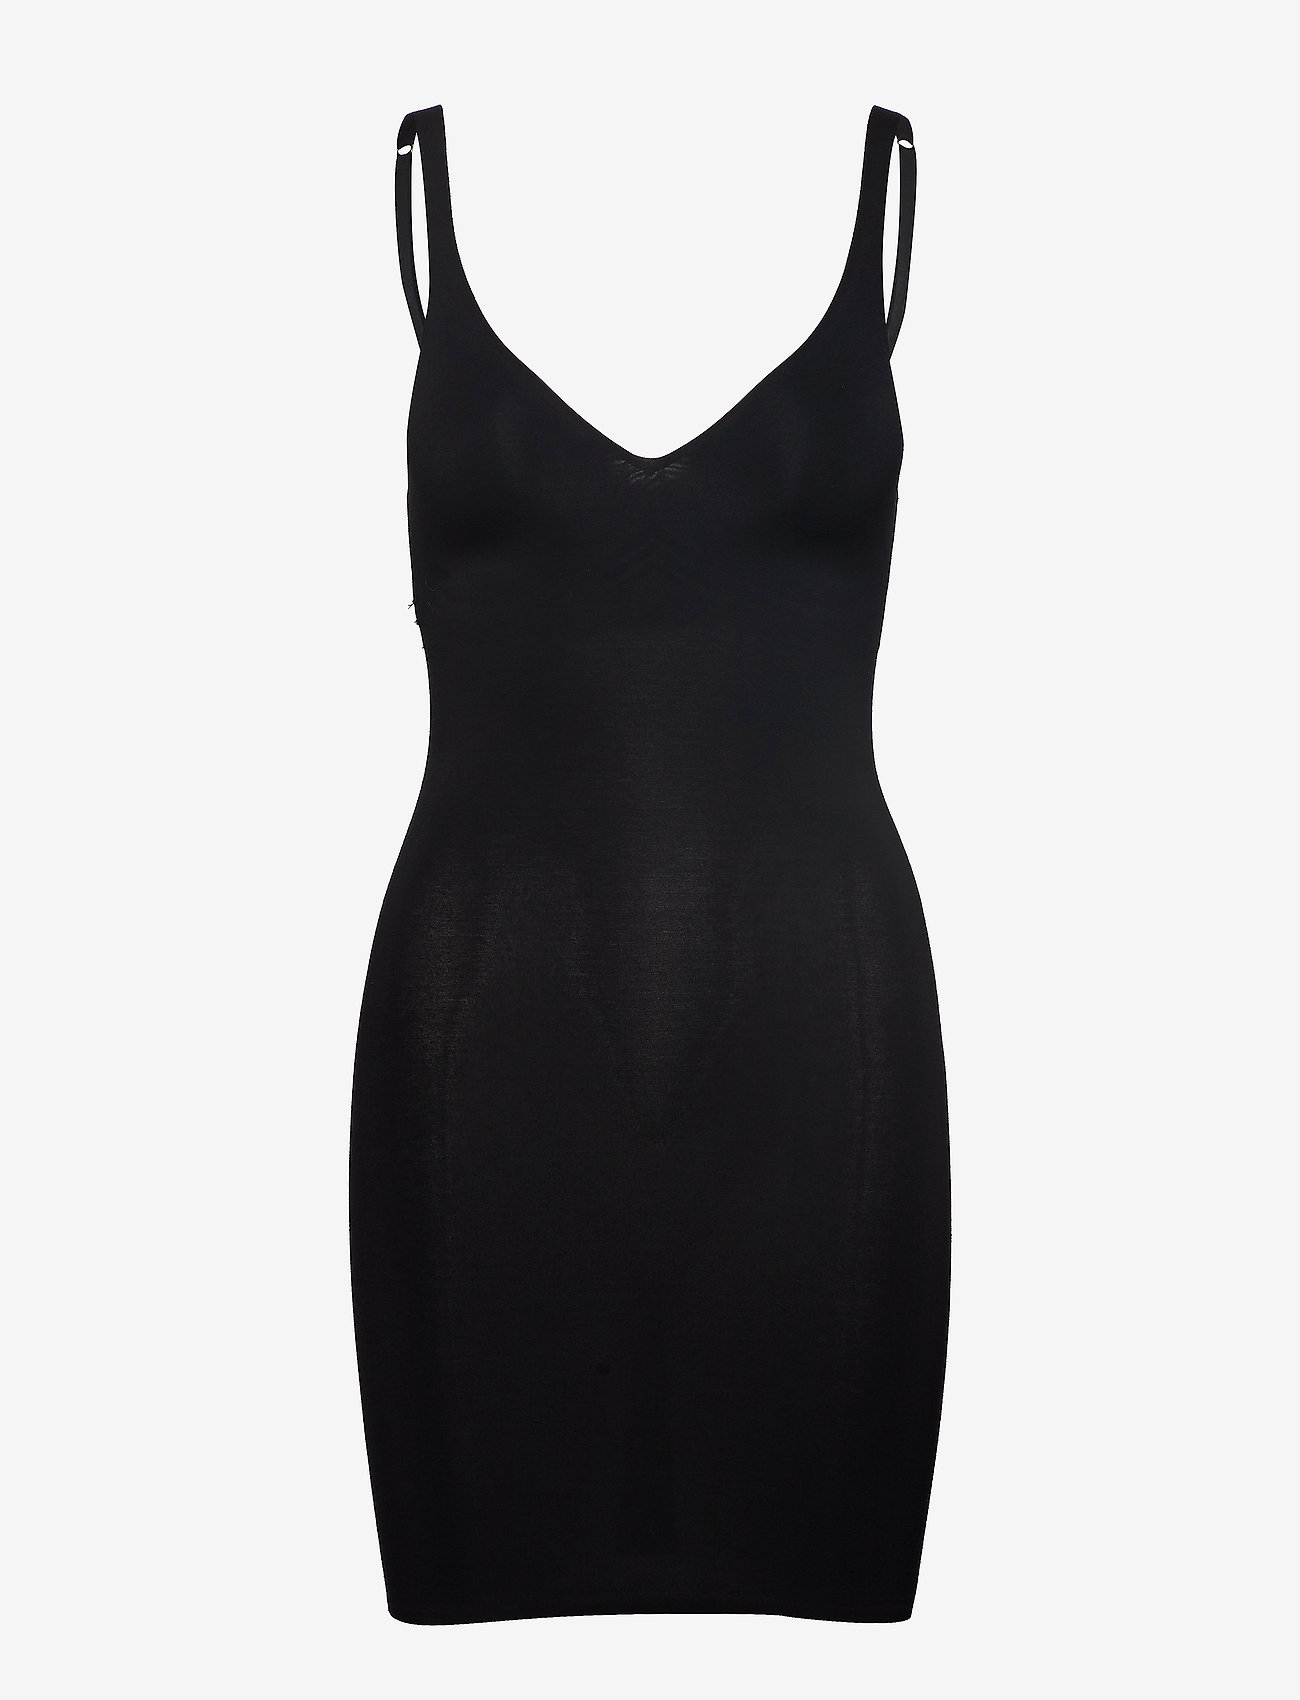 Wolford - 3W Forming Dress - bottoms - black - 0